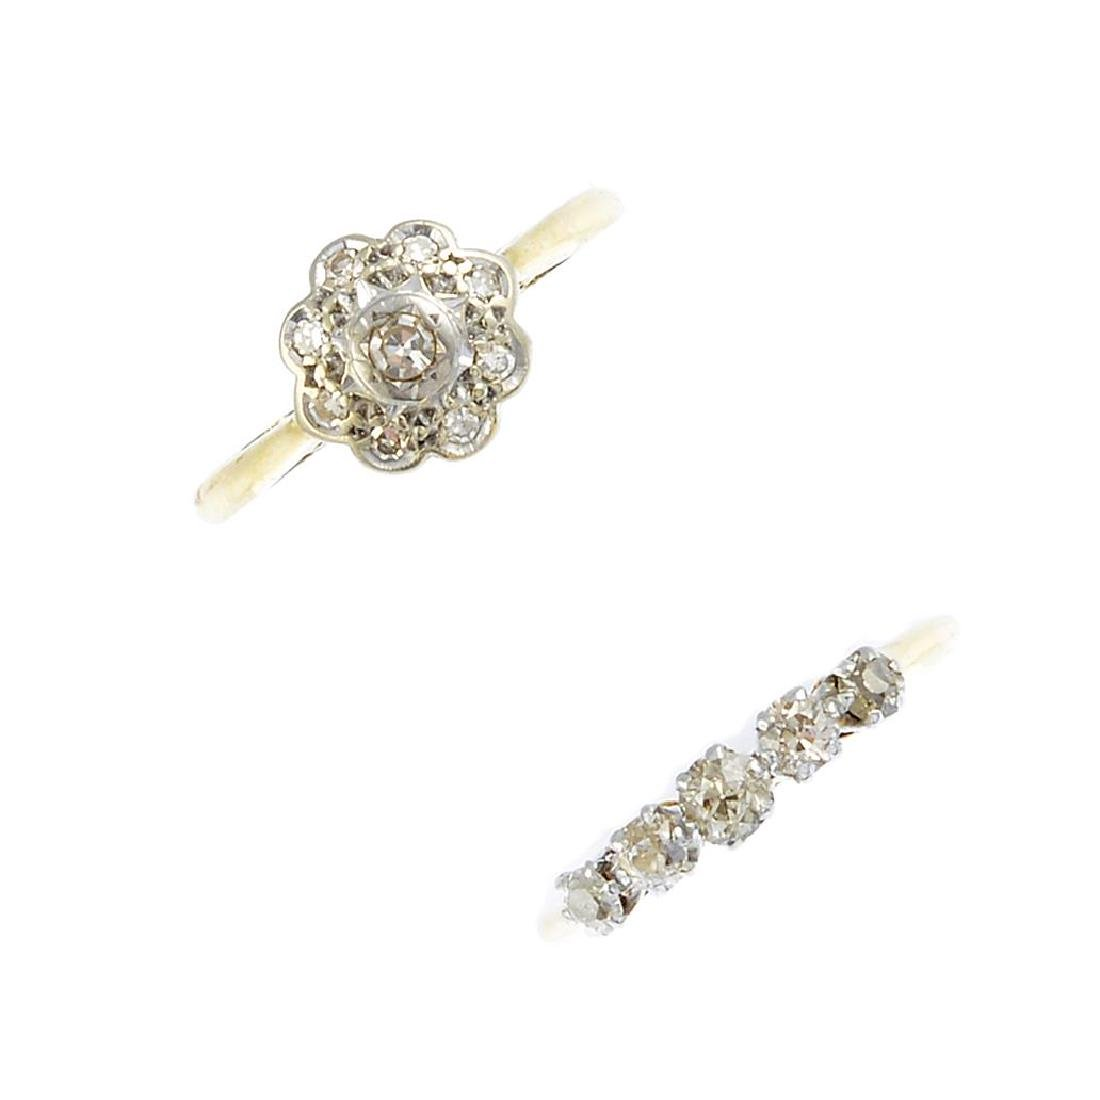 Two diamond rings. The first, an 18ct gold star and